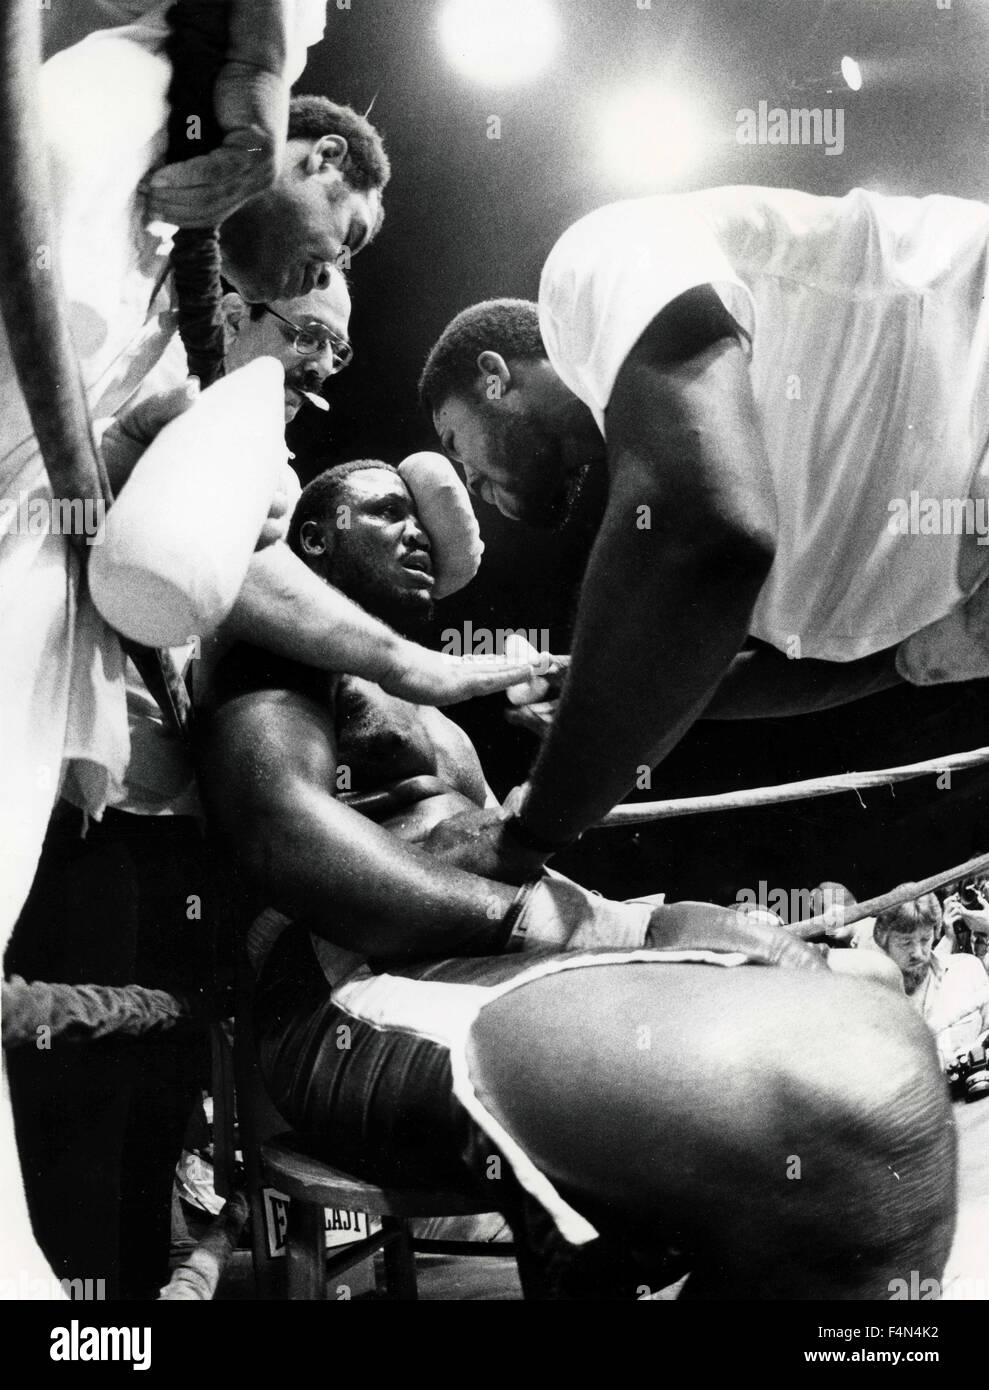 Joe Frazier in a boxing match, USA - Stock Image